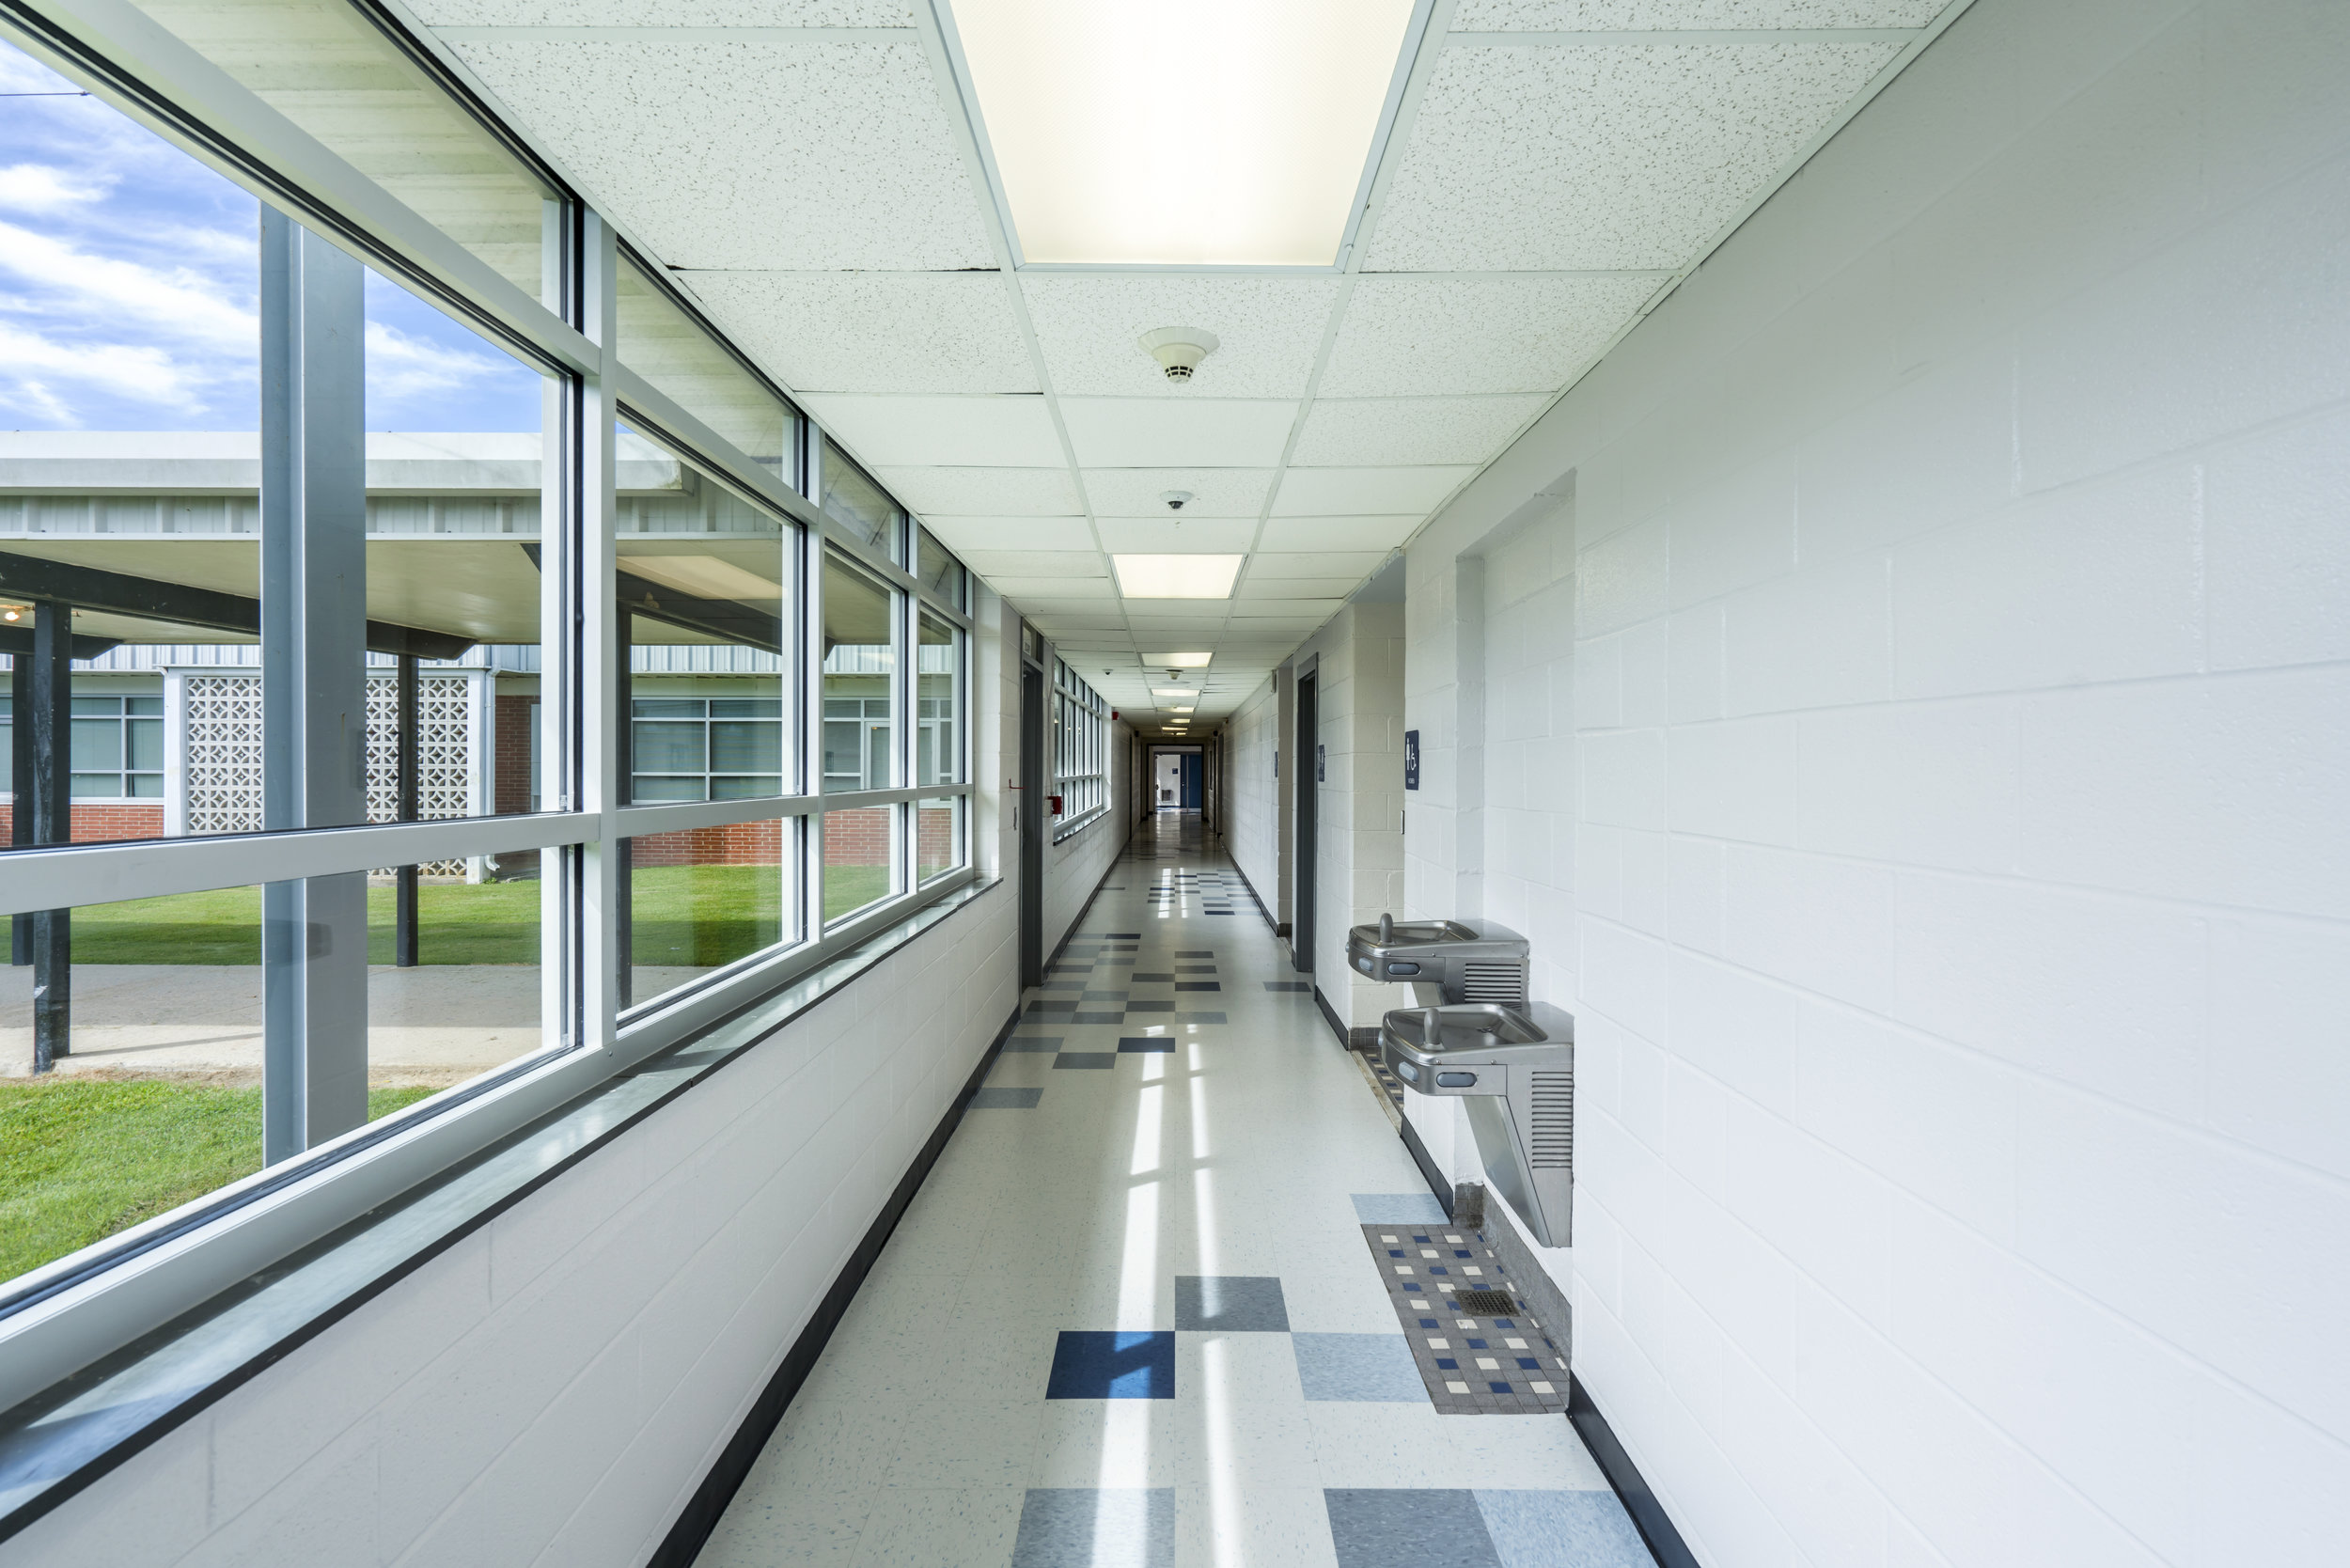 TYPICAL CORRIDOR - AFTER